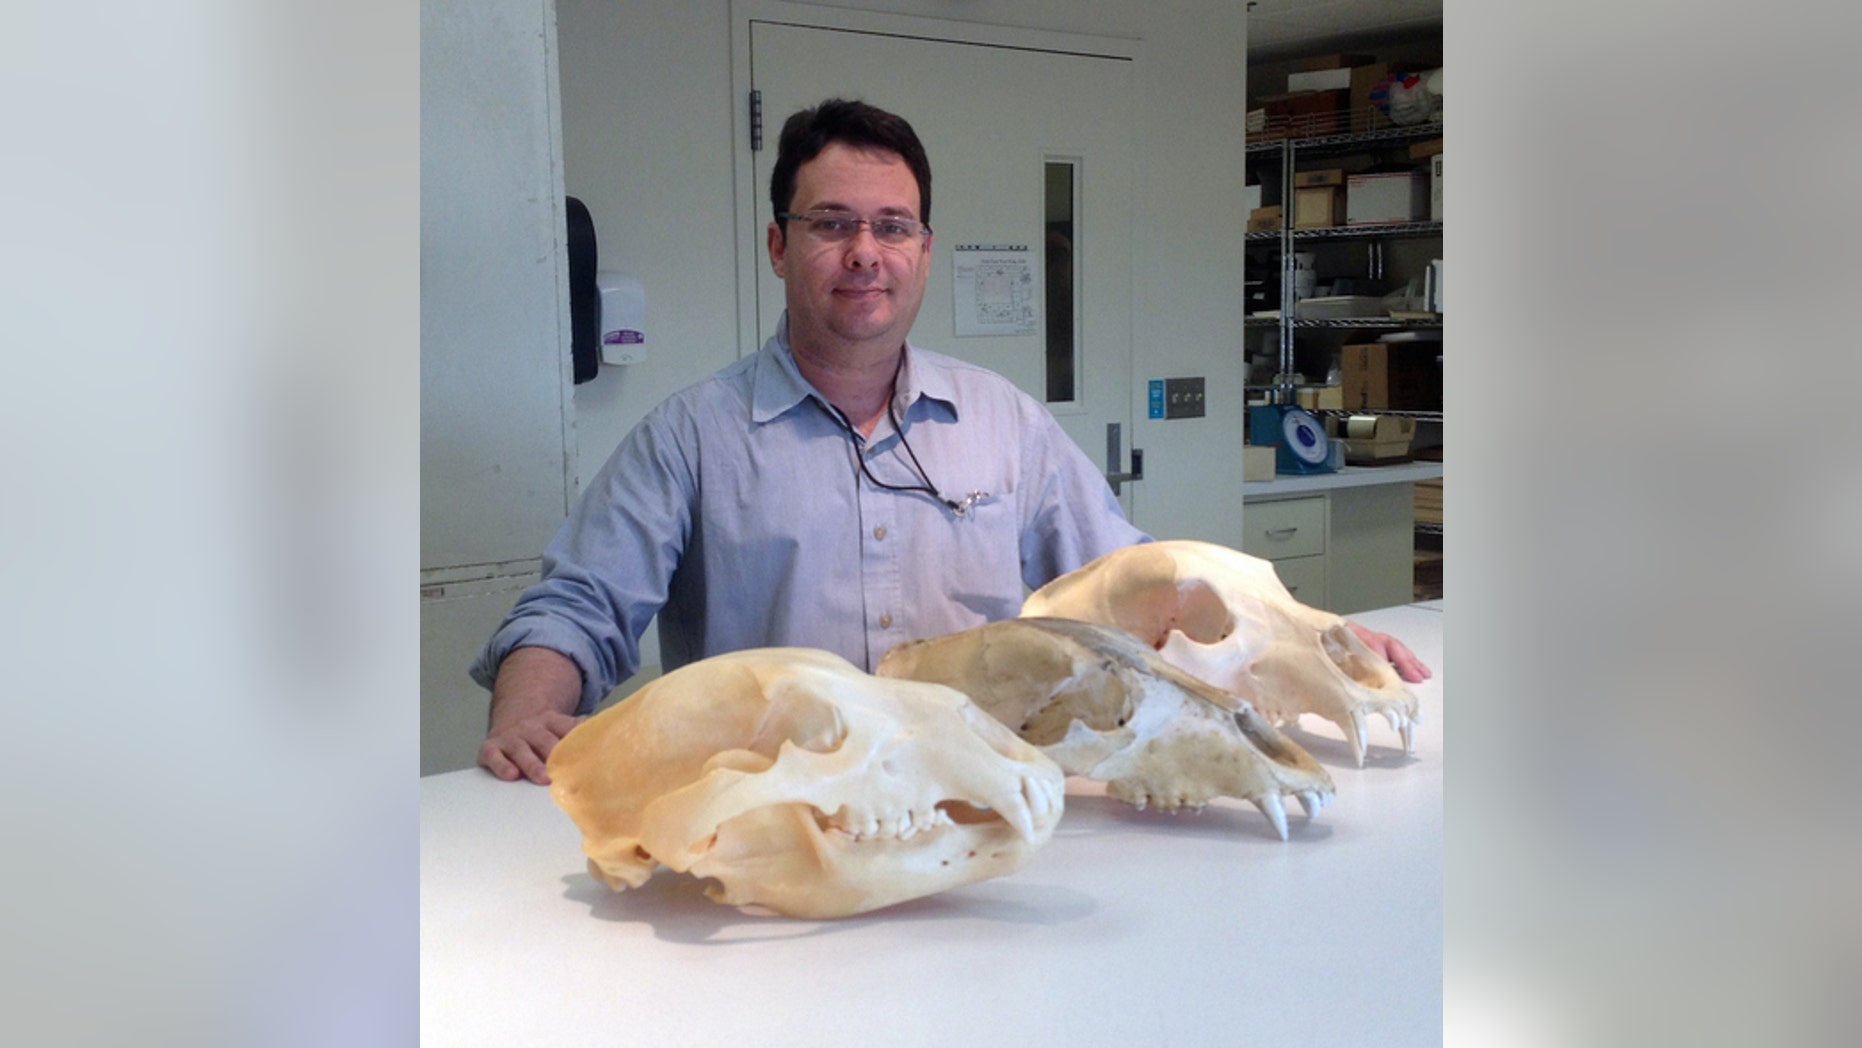 Eliécer Gutiérrez, a researcher who helped debunk a recent study on the yeti, with bear skulls at the Smithsonian's National Museum of Natural History.